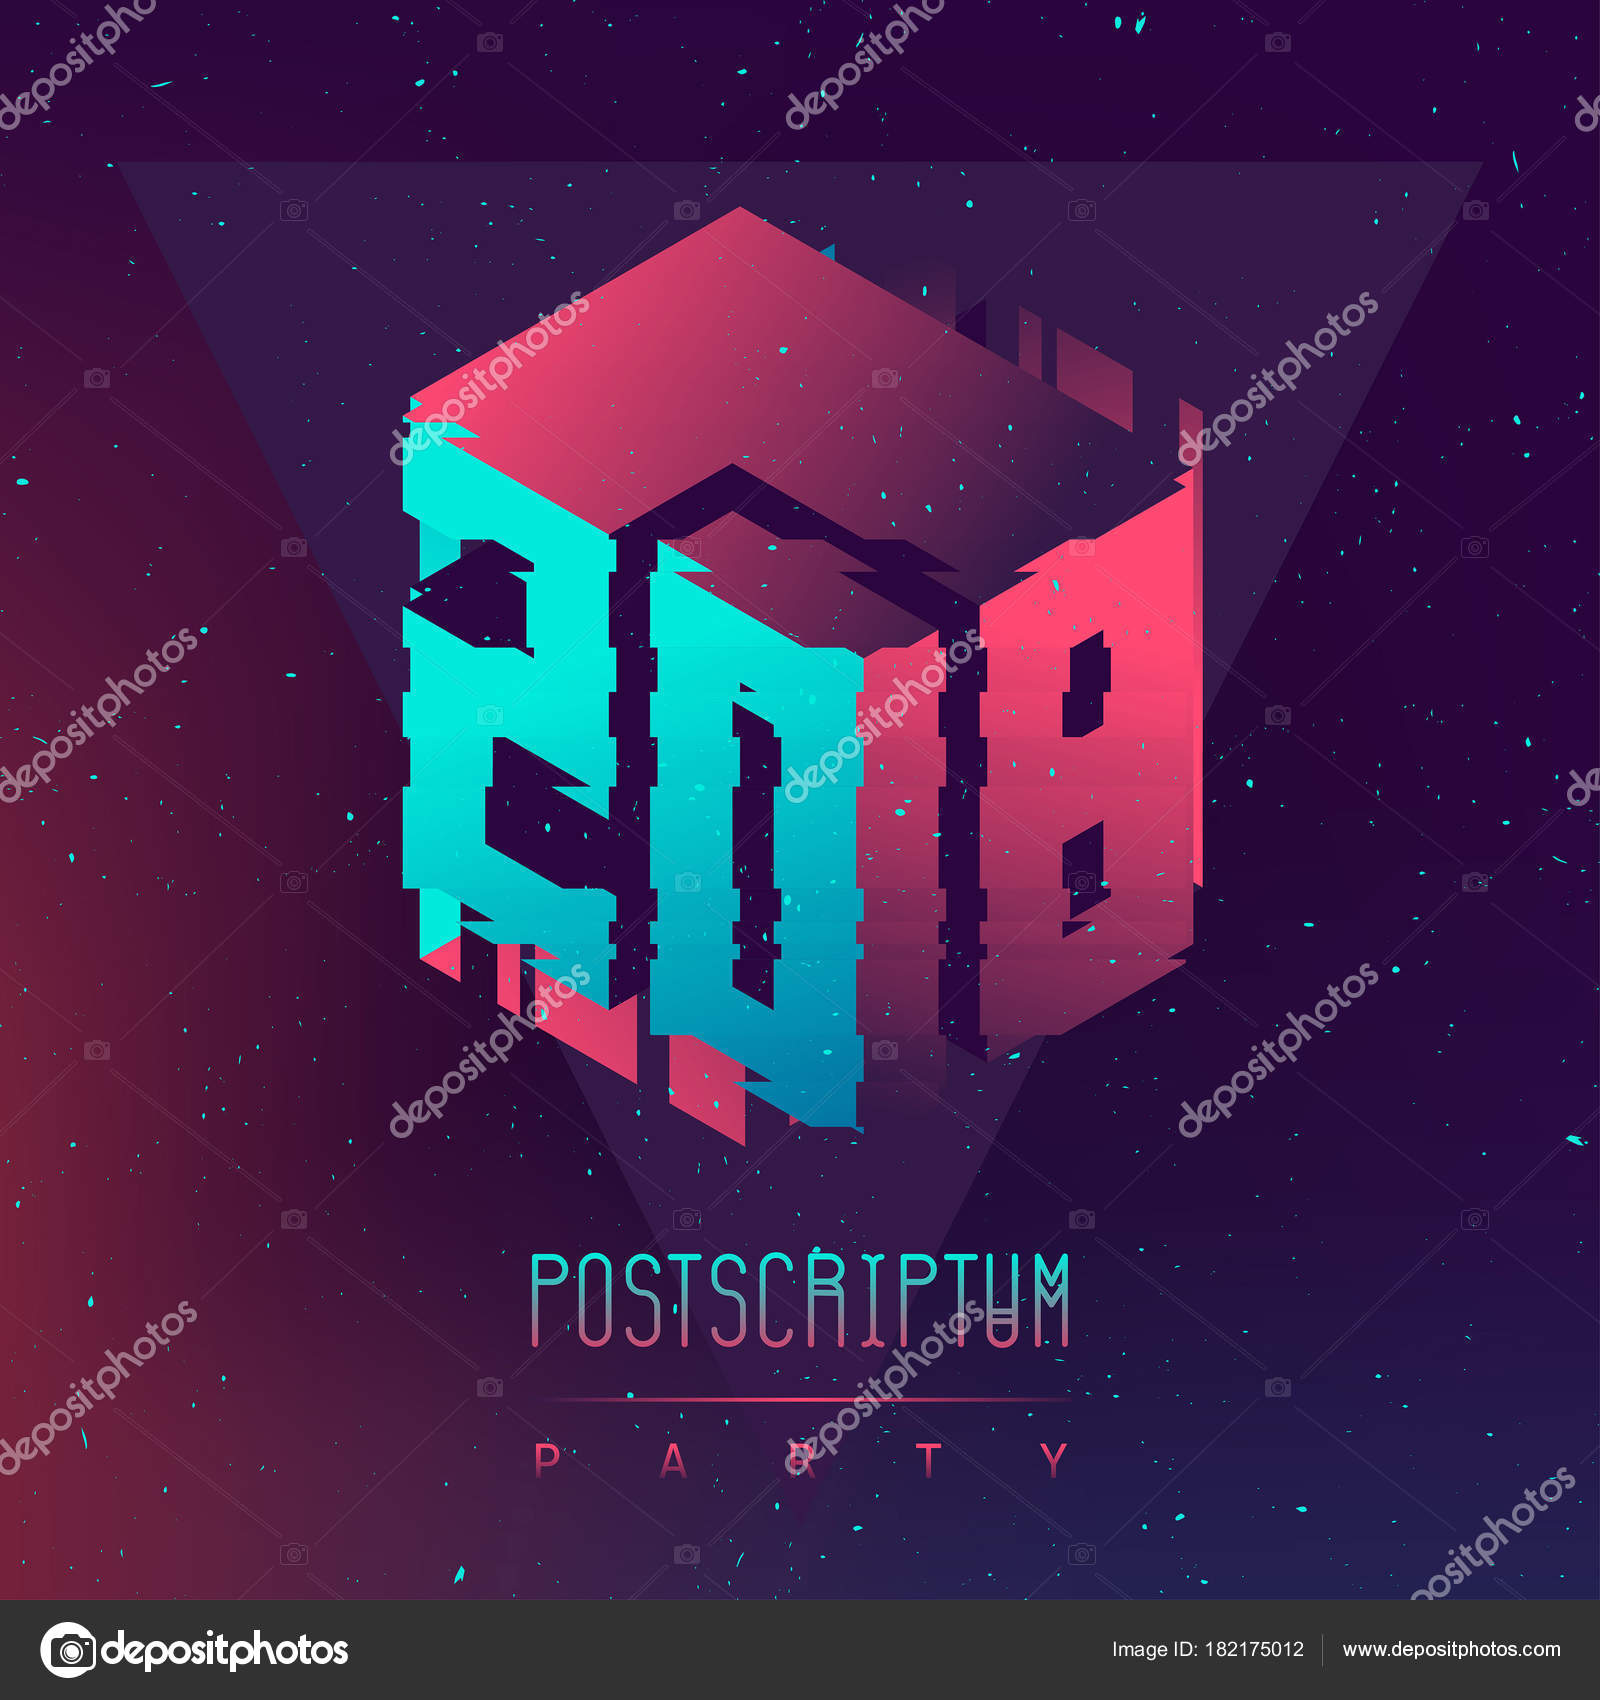 Poster Electronic Music Fest Postscriptum Night Party Club Party